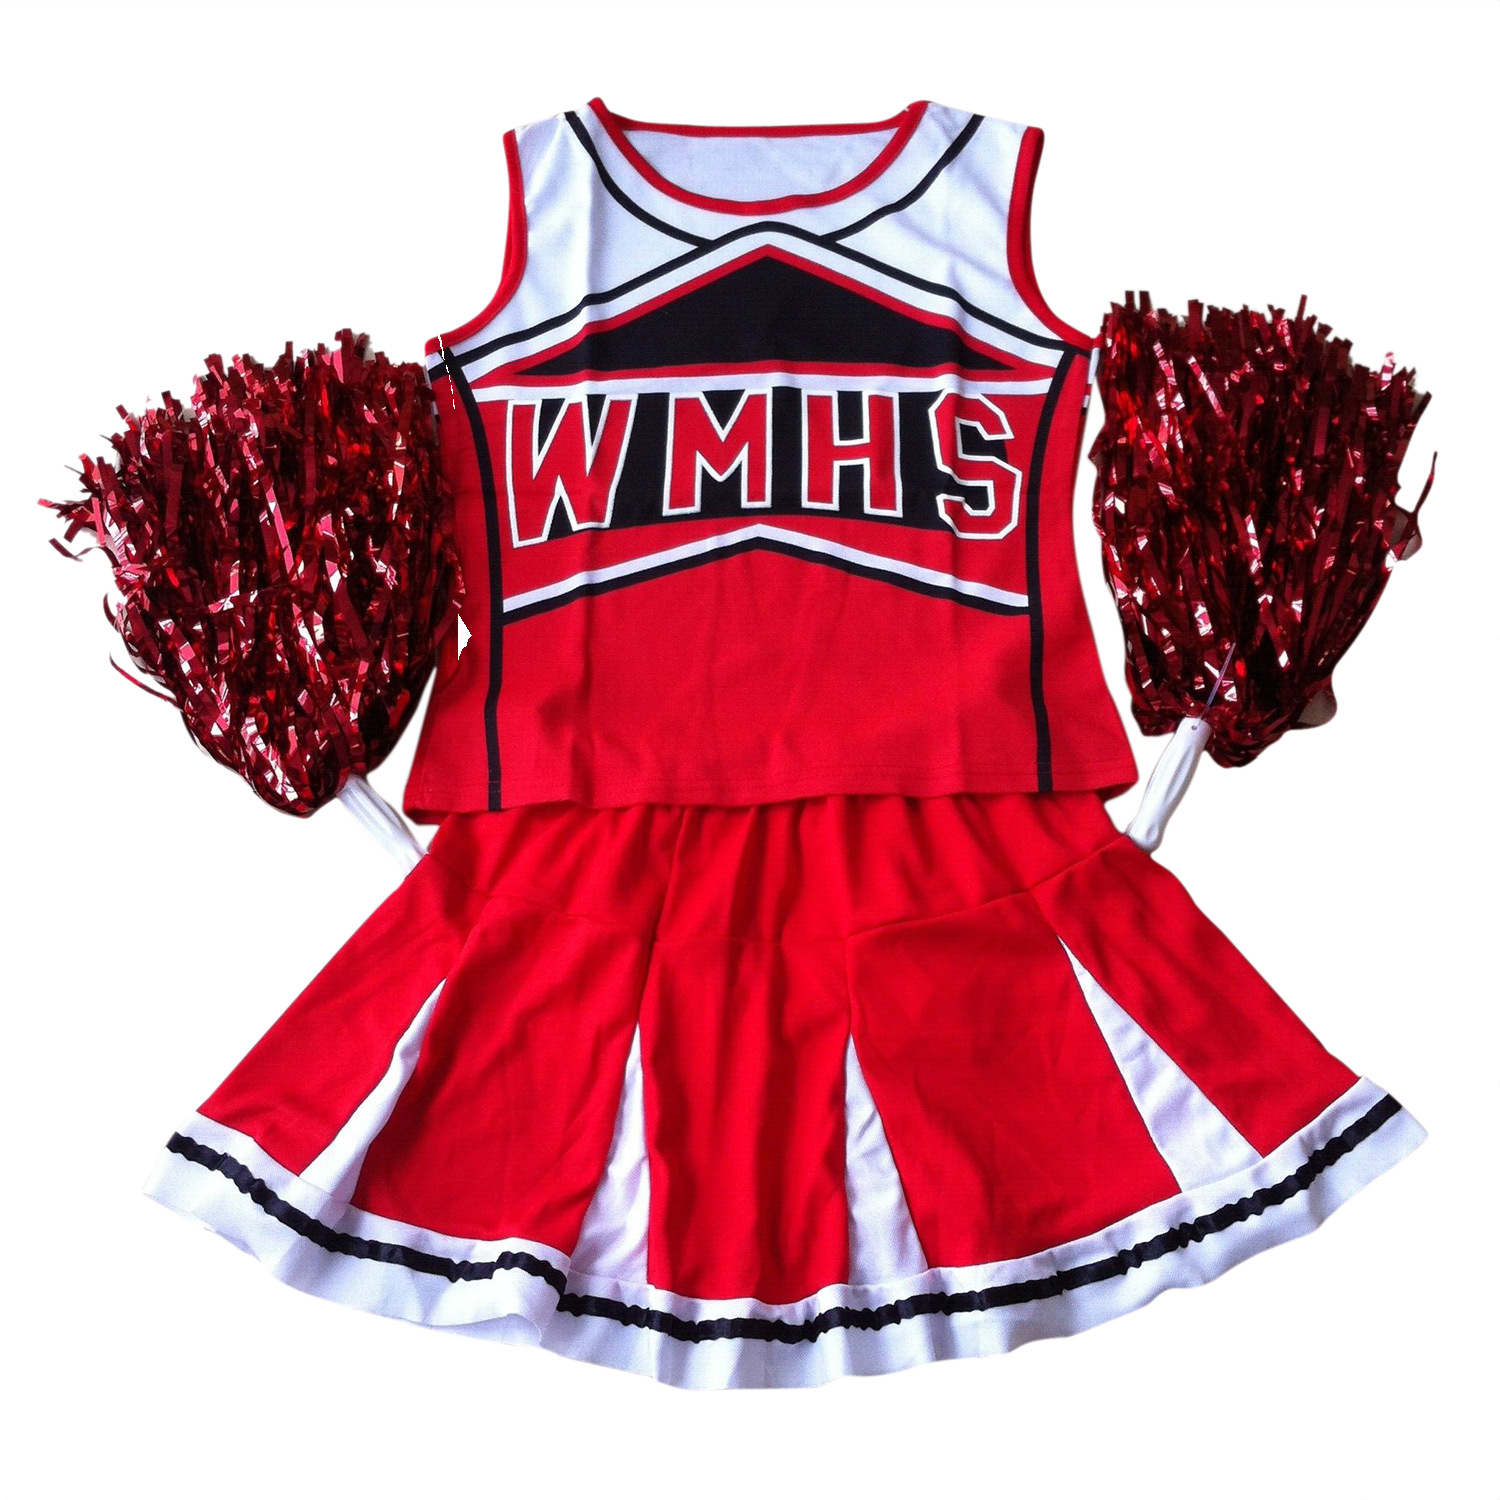 With 2 Pcs Pom Poms Tank Top Petticoat Pom Cheerleader 2 Piece Suit New Red Costume Dancing Uniforms School Students Dress 170cm